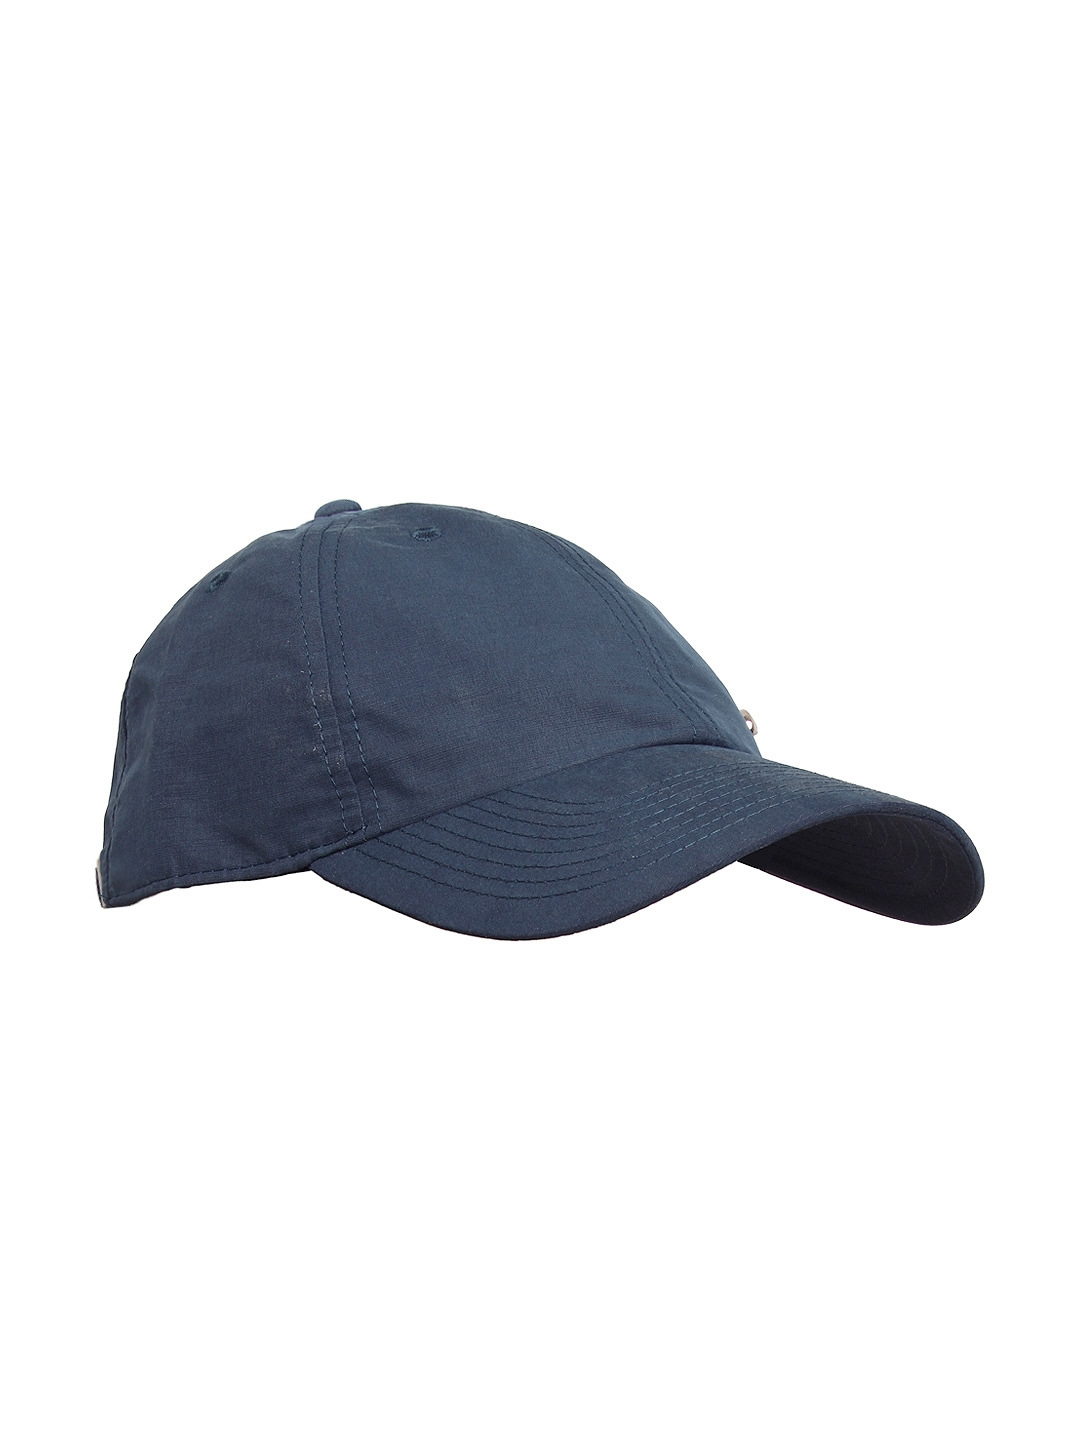 9a8492cd1e3 Buy Nike Navy Blue Heritage86 Metal Swoosh NSW Caps - Caps for ...